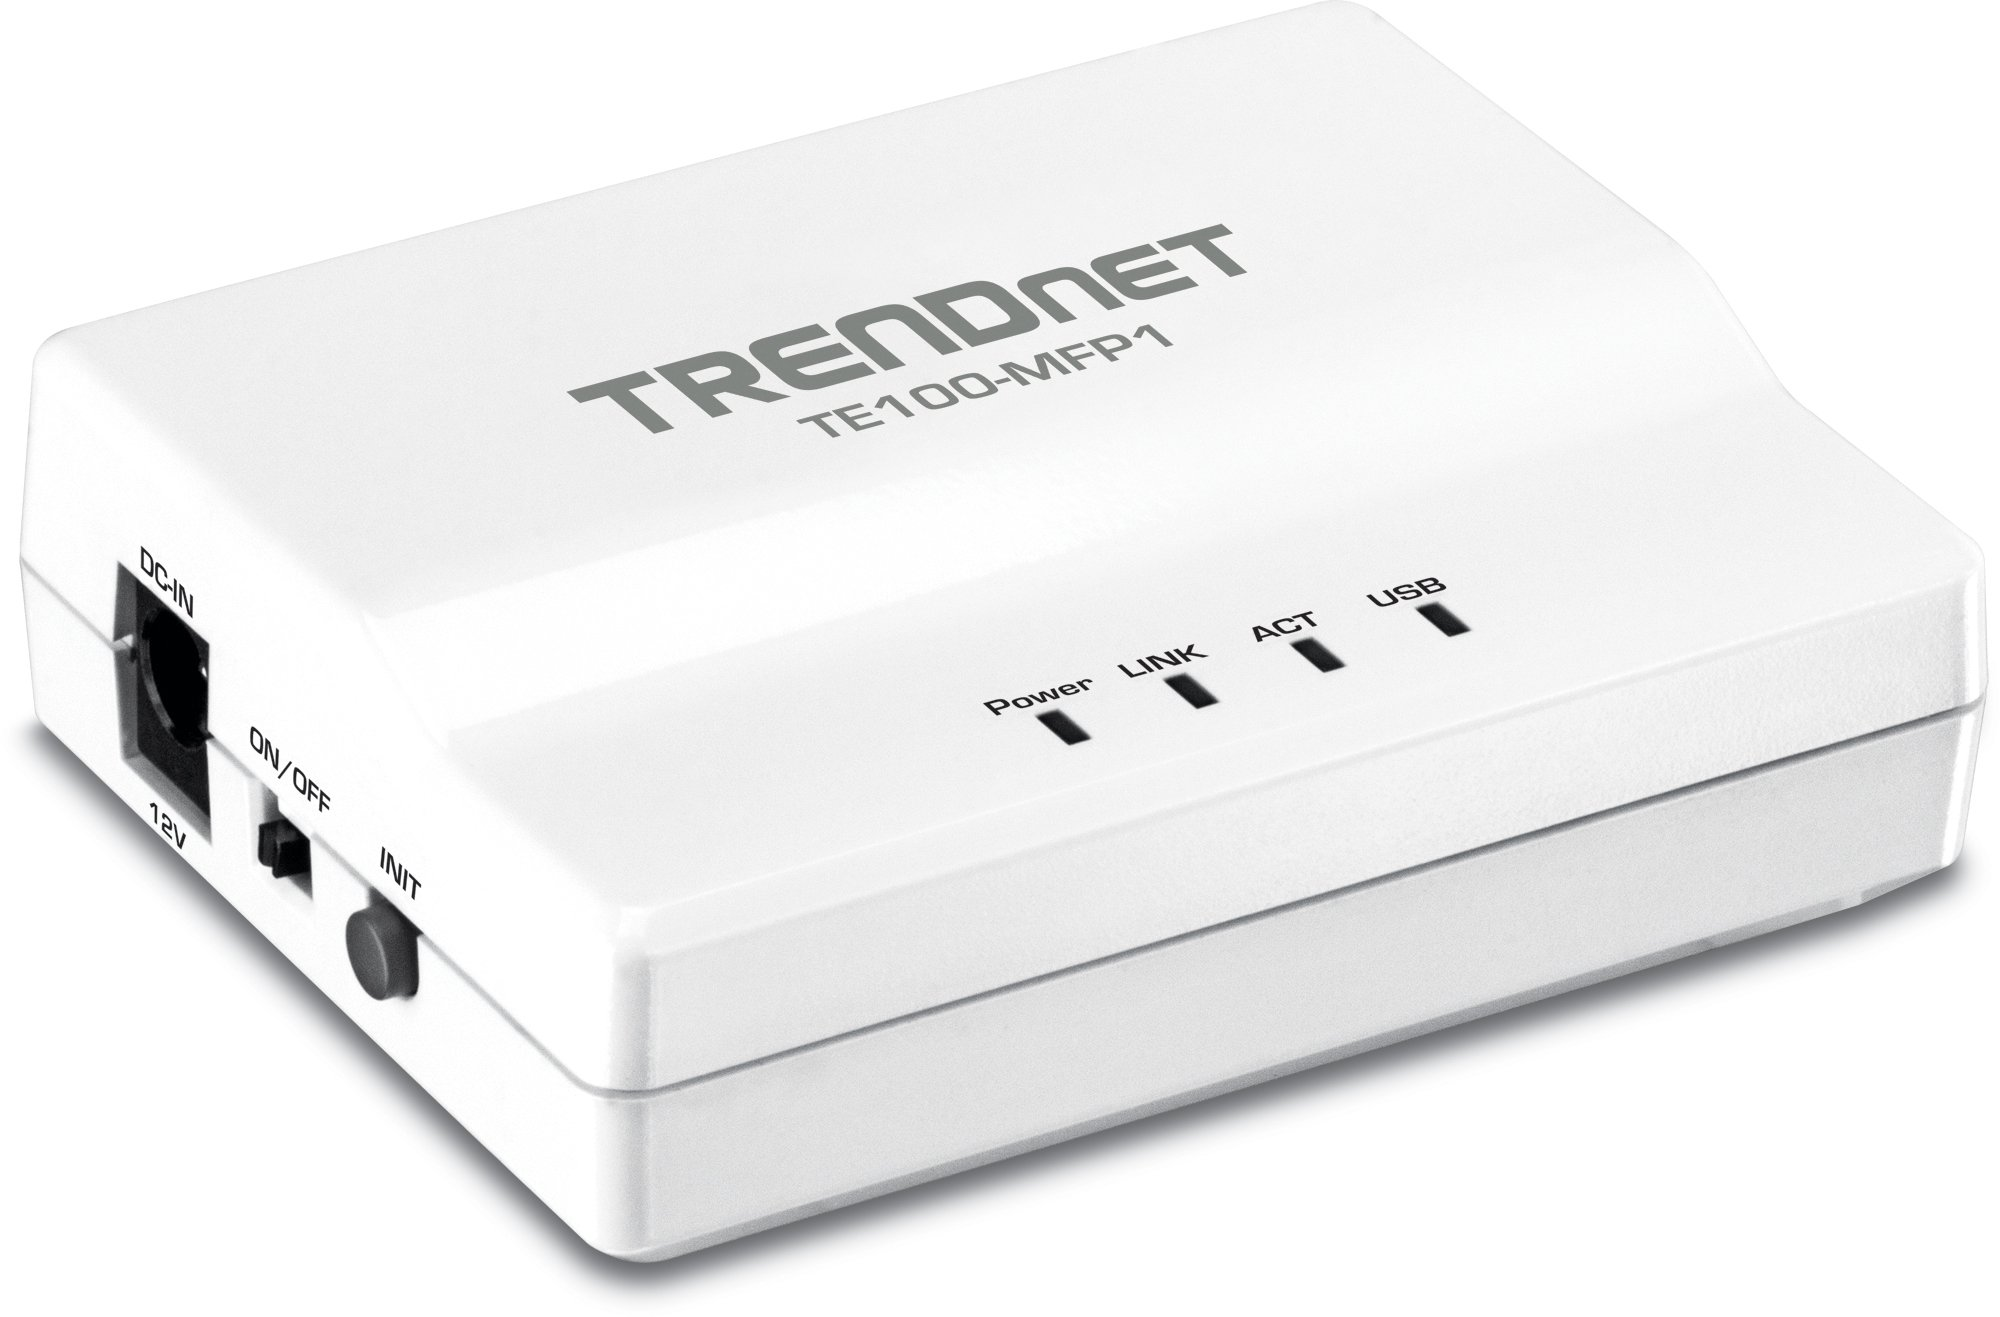 TRENDnet 1-Port Multi-Function USB Print Server TE100-MFP1 (Version v1.0R) by TRENDnet